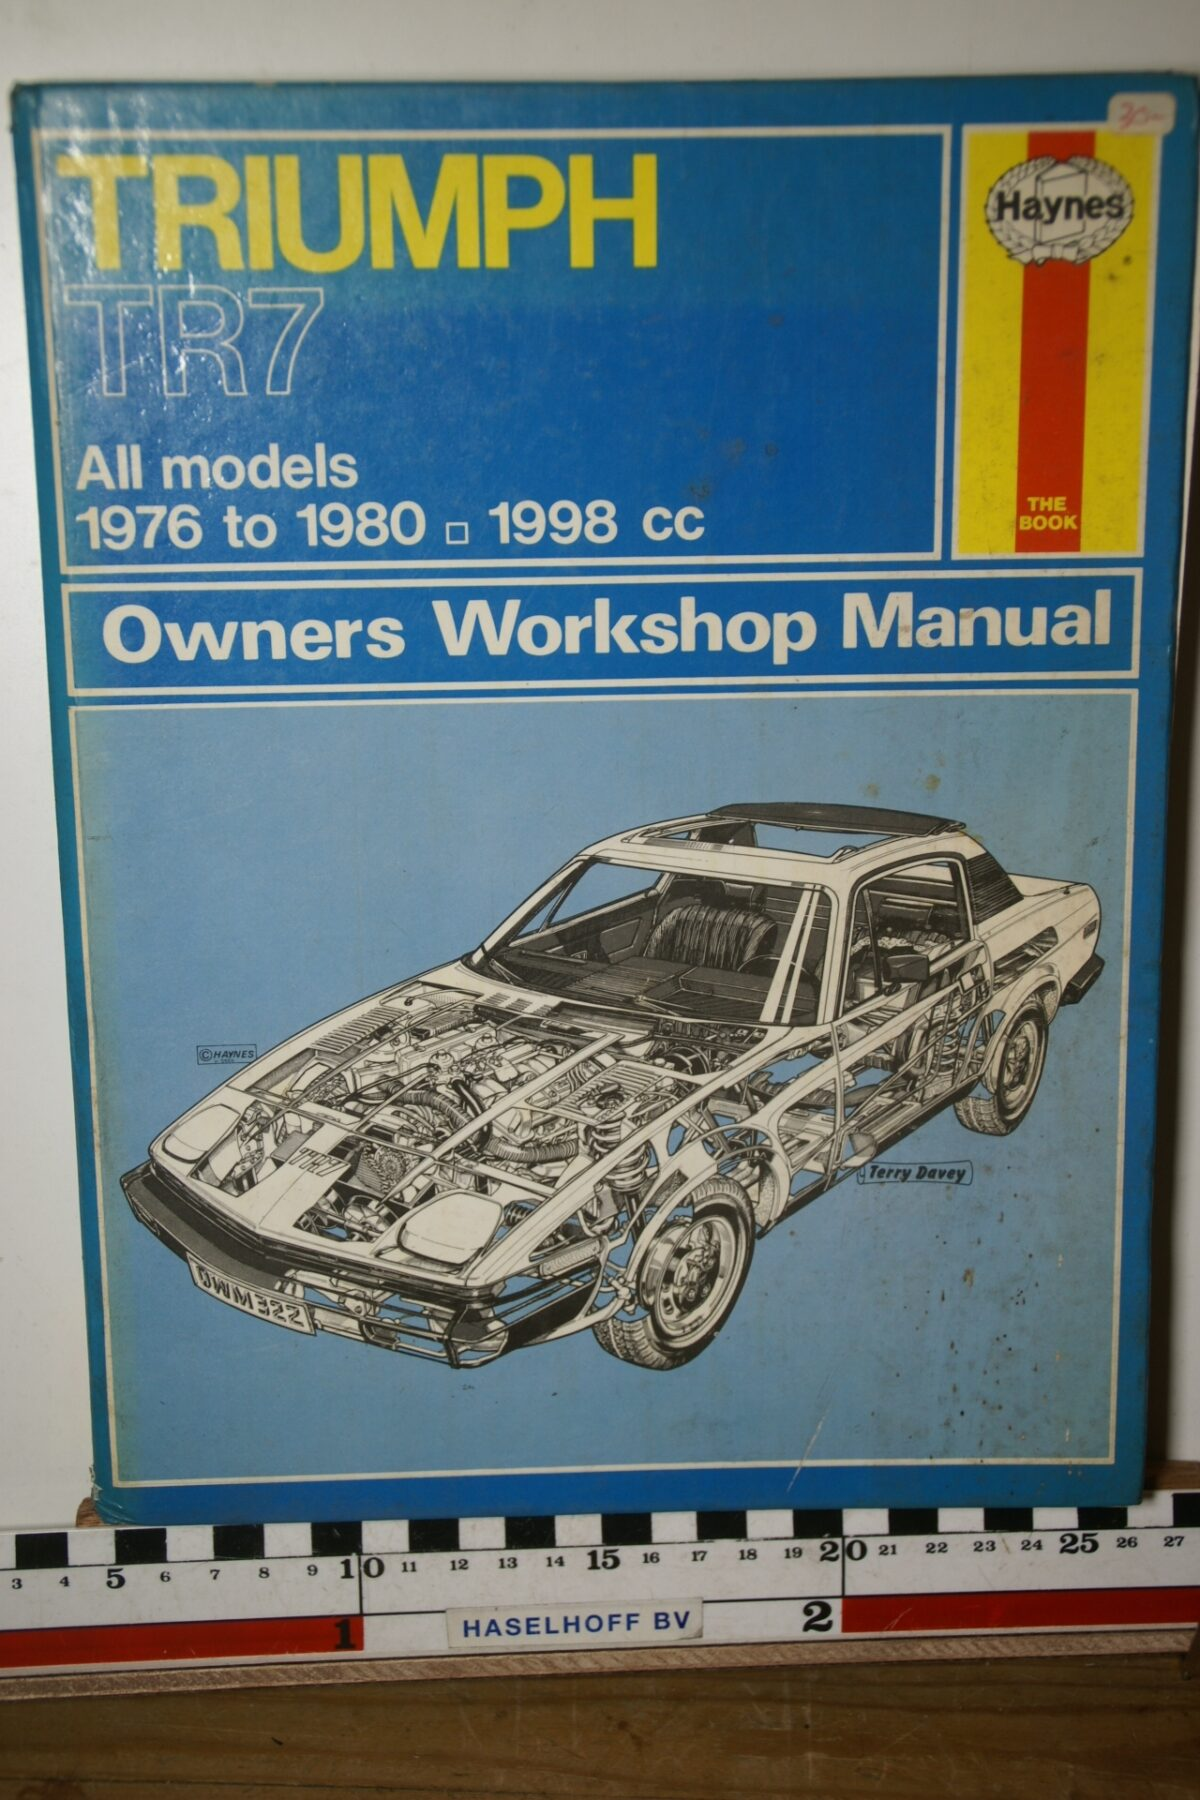 Haynes Triumph Owners Workshop Manual 180205-3704-0